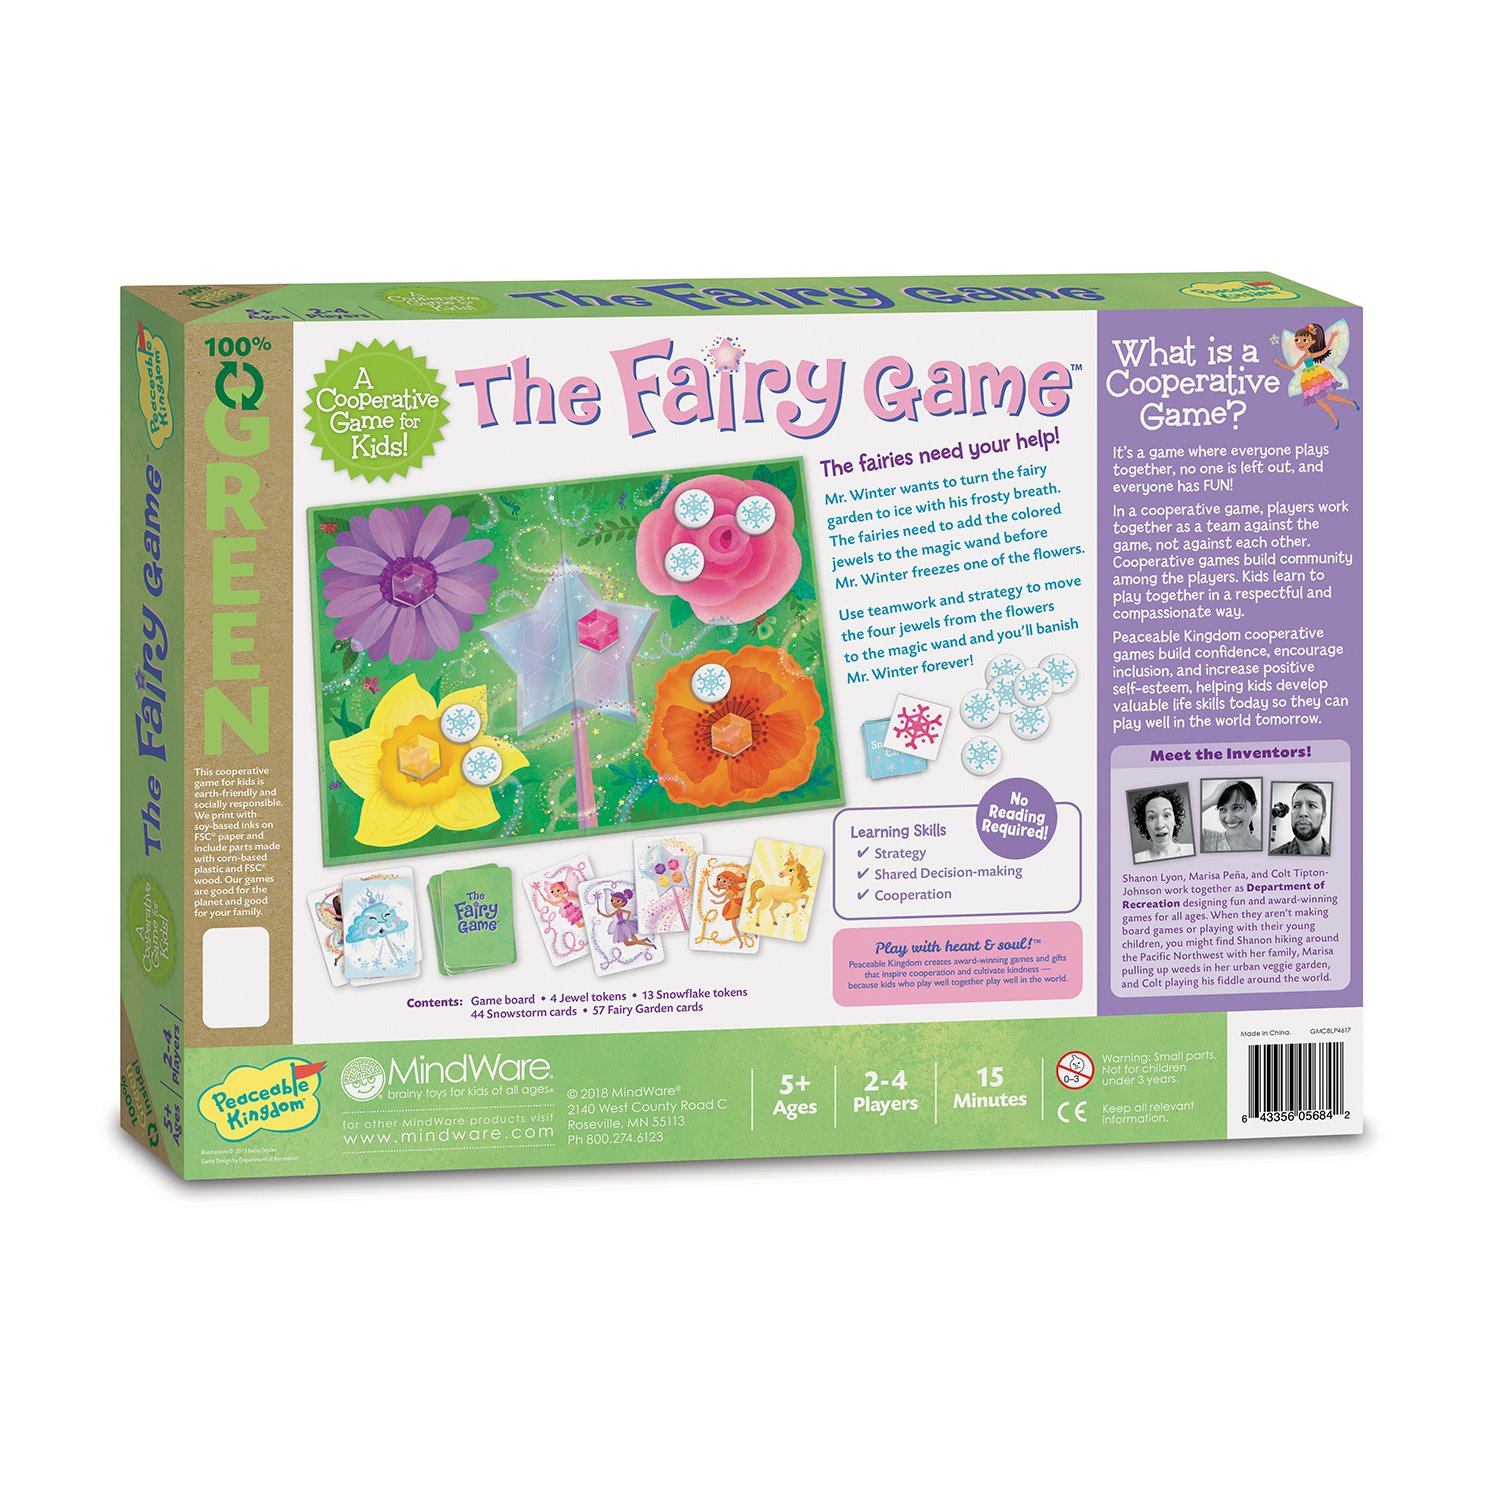 Peaceable Kingdom The Fairy Game Award Winning Cooperative Game of Logic and Luck for Kids by Peaceable Kingdom (Image #5)